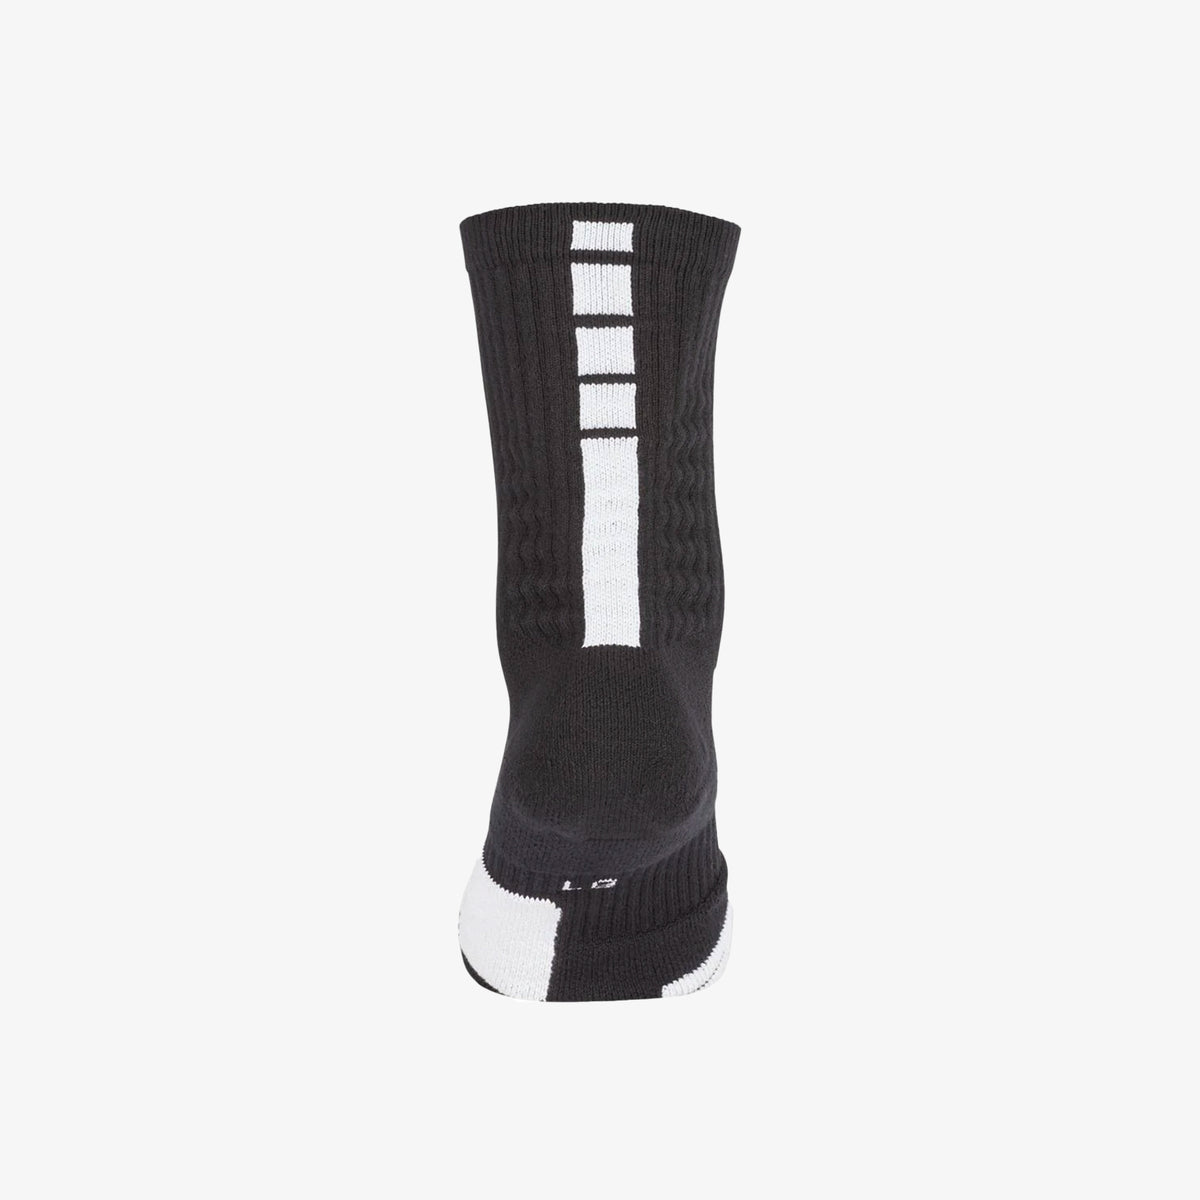 Elite Basketball Crew Socks - Black/White